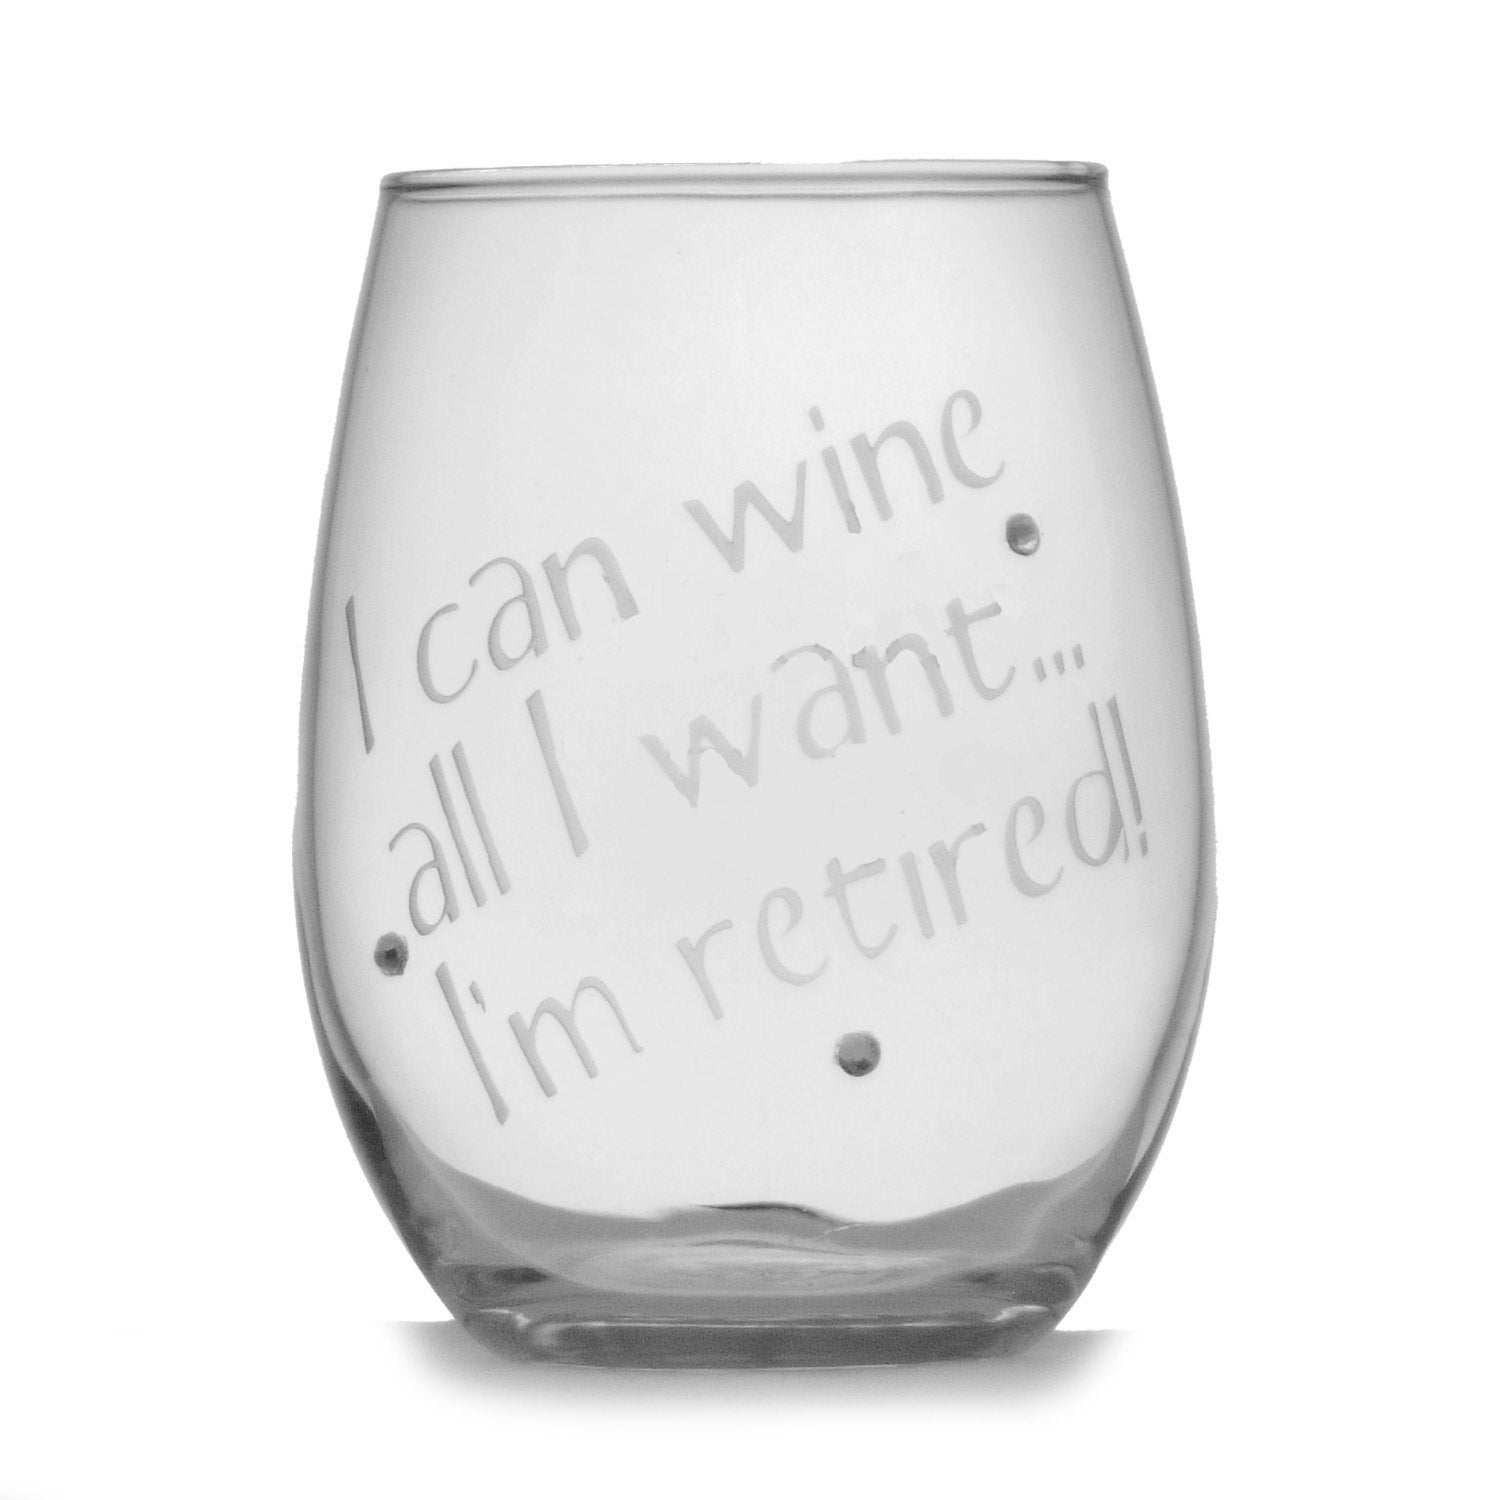 Retirement Gift I Can Wine All I Want - I'm Retired Personalized 15 oz stemless wine glass | Funny Retirement Gift | Retirement Wine Glass